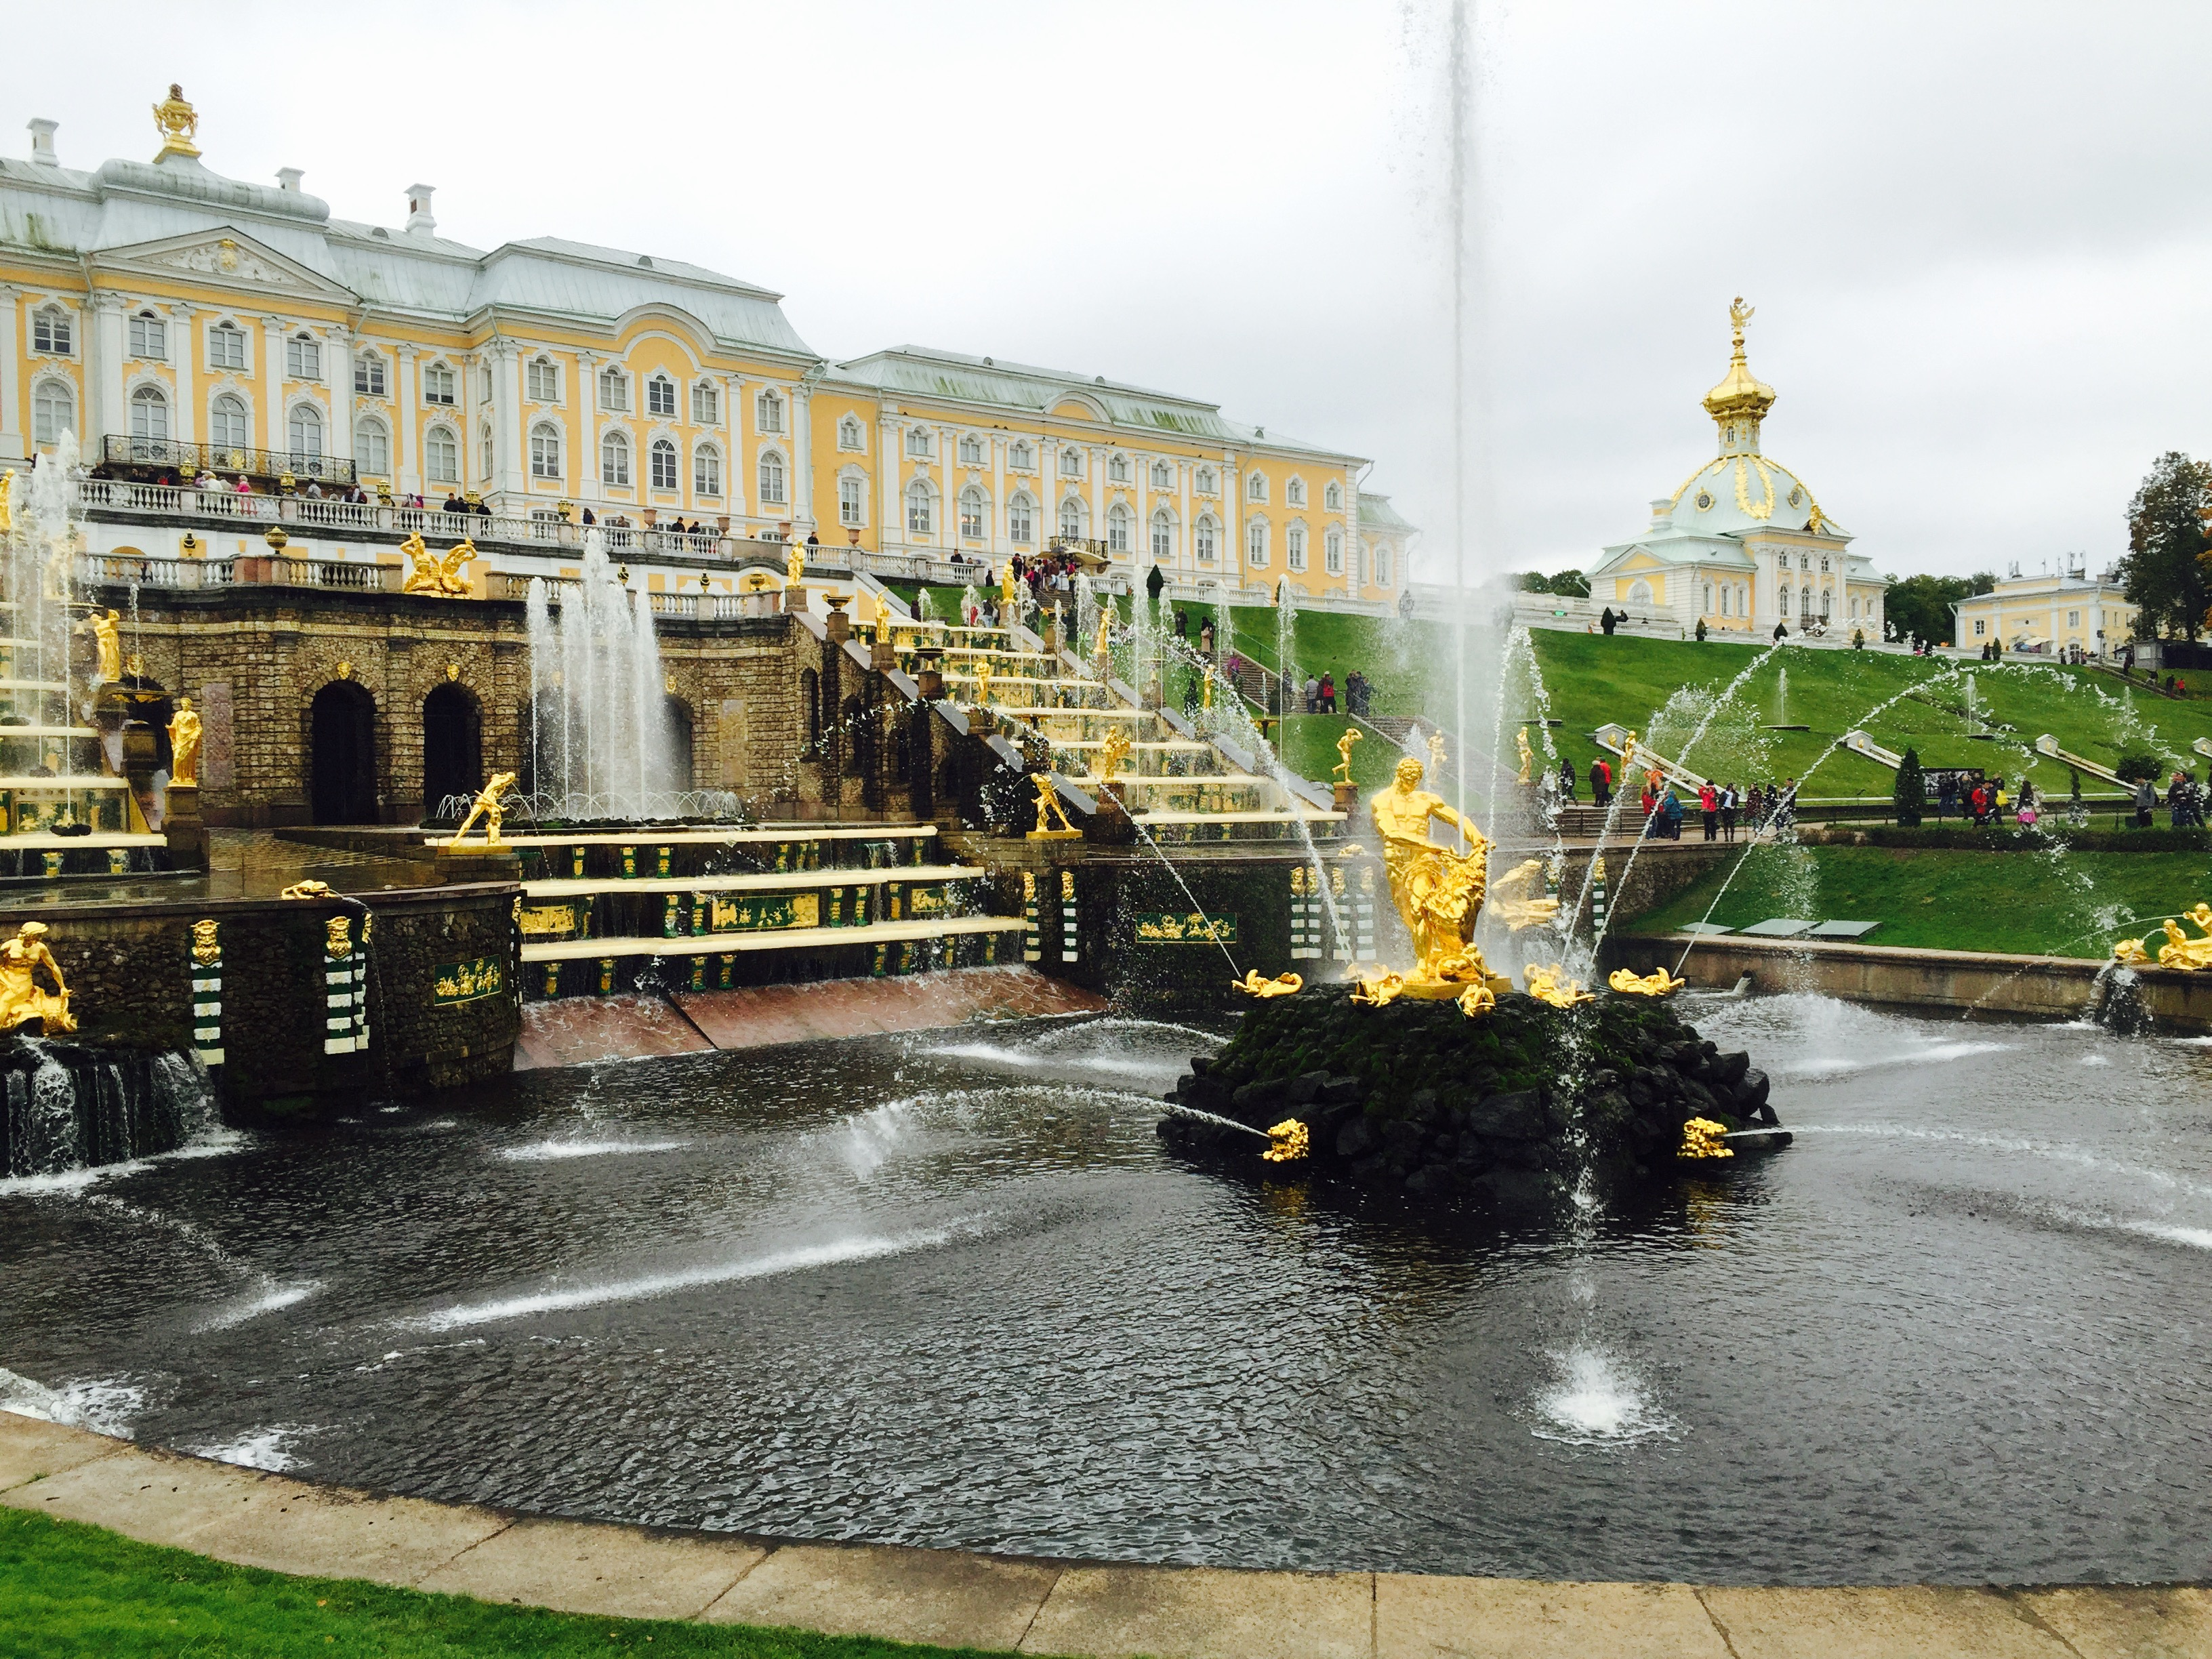 Russia (Part II): St. Petersburg, the palaces